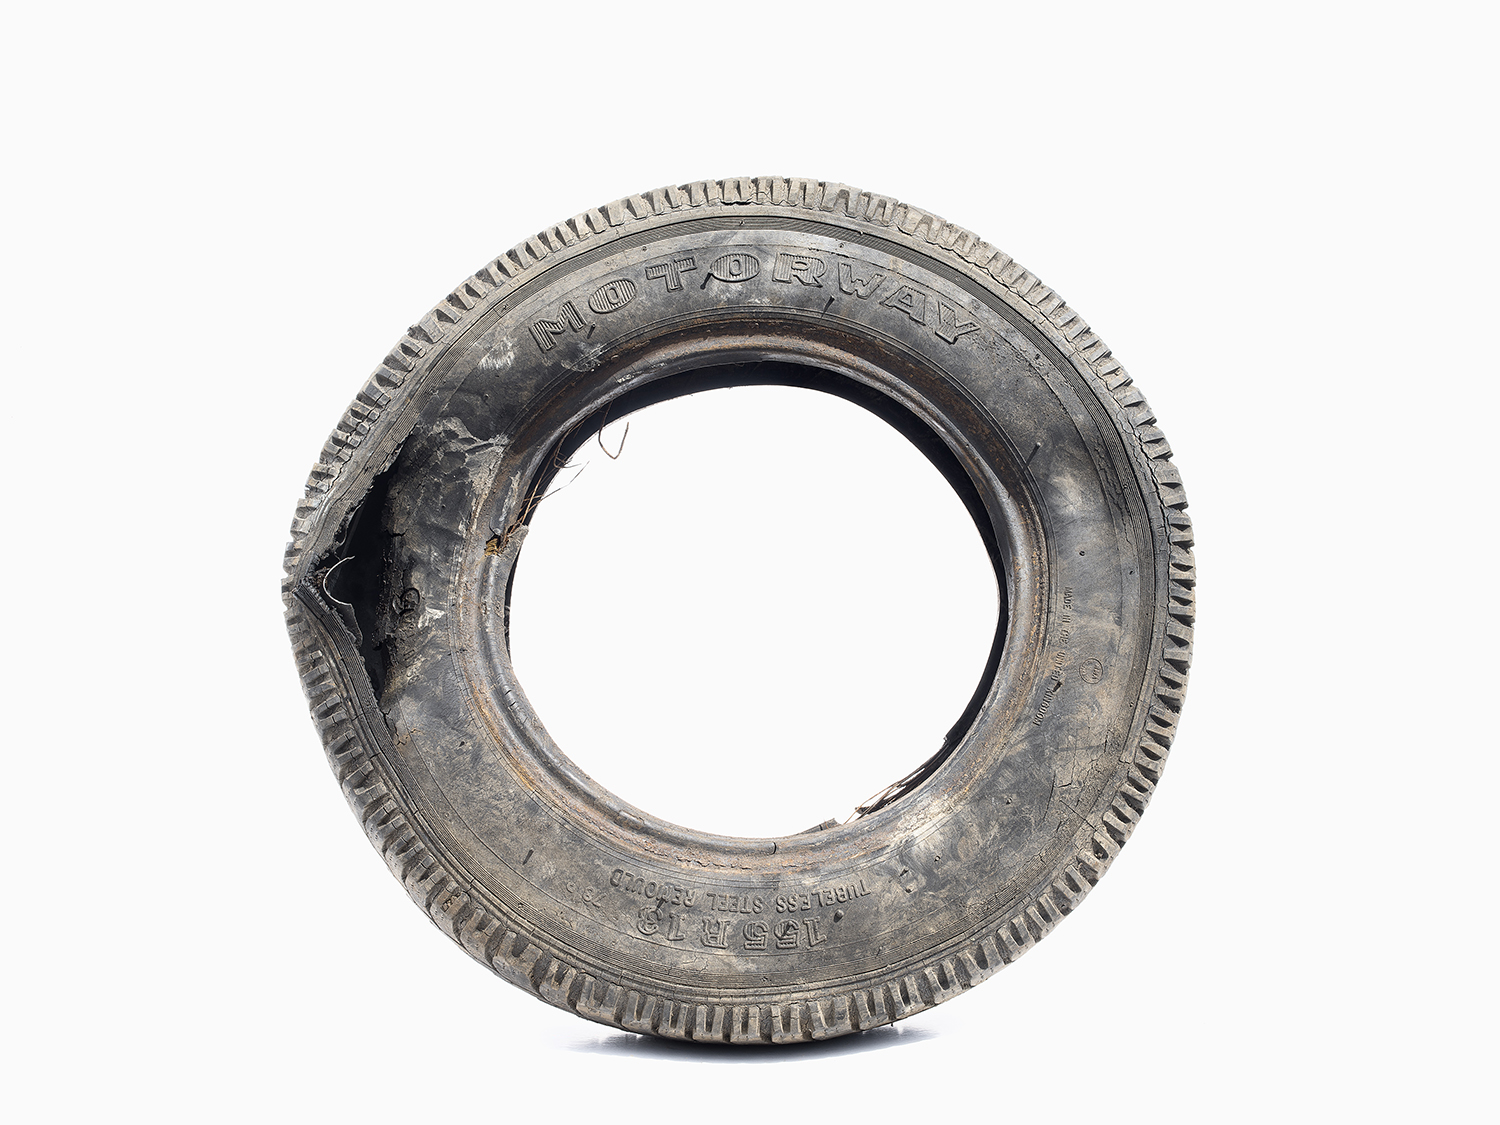 Waste tire, Devon, United Kingdom, Giclée print from digital medium format, 90x120cm, 2017.    If we consider historic responsibility for greenhouse gas emissions, we gain a very different understanding of who is responsible for climate change. When we focus on who is currently emitting the most greenhouse gasses, blame often falls on developing nations that actually have relatively short-lived emission histories and / or smaller carbon footprints per person than that of many developed nations. Our perception of who is responsible for climate change can dramatically change when we look at emissions in different ways. For example, the United Kingdom has arguably the longest-lived historic responsibility for climate change, being the first nation to industrialise and emit large quantities of greenhouse gases during the industrial revolution. The U.S. long held the title as the world's greatest emitter until 2005 when it was overtaken by China, which is now the world's greatest emitter of all time. But when we look at the carbon footprint per person we find that Luxembourg and the U.S. surpass China as the top-ranking emitters. However, a focus on the political geography of emissions greatly simplifies the narrative of who is responsible. With corporations emitting on a global scale and operating outside the control of any one state, we find that emissions are in fact being outsourced to developing nations by developed nations. Just because a corporation's factories release emissions in China doesn't mean that its headquarters are not in London or Washington D.C. Just 100 fossil fuel companies are now believed to be responsible for 71 percent of emissions since 1988. This outsourcing of emissions is a form of slow violence that derives from the very same colonial practices that led to the development of some nations over others. Yet instead of being based, as in the past, solely upon resource grabbing, this re-branding of colonialism is now also concerned with the redi